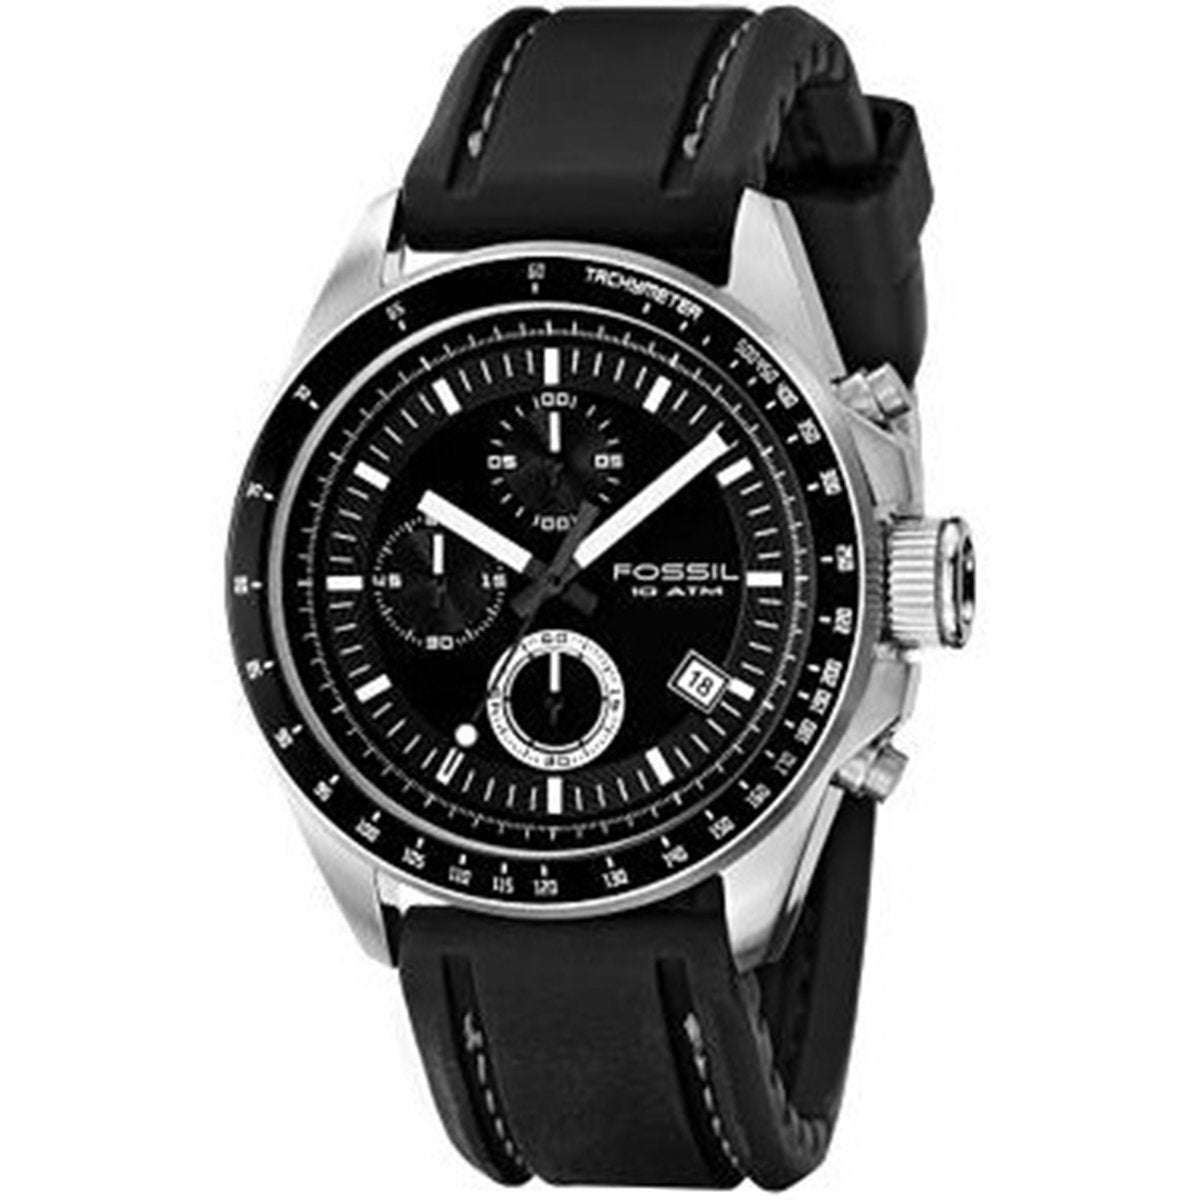 Fossil Men's CH2573 Chronograph Tachymeter Black Watch, S...